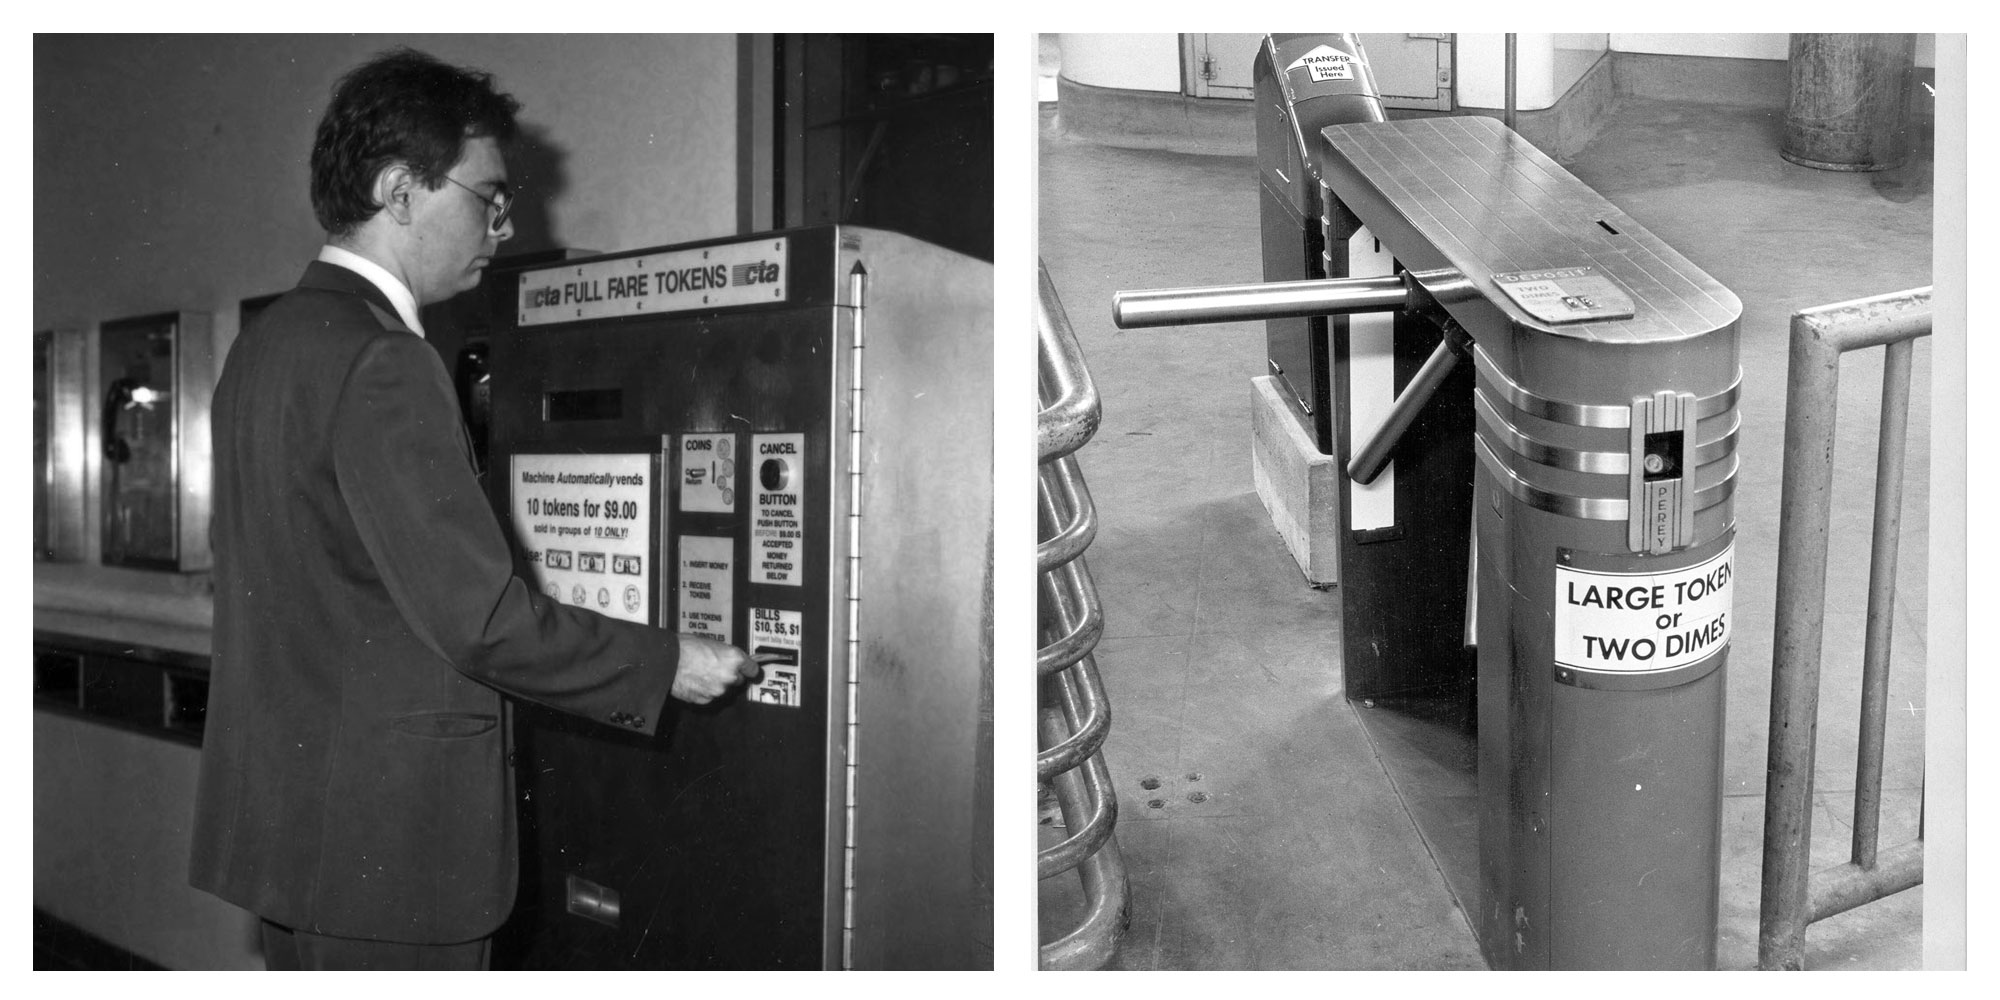 The first token turnstiles were installed in 1954 (right); as technology advanced, CTA tokens were detected by size and weight using infrared light. By 1991, tokens could be purchased from automated machines (left). (Courtesy Chicago Transit Authority)